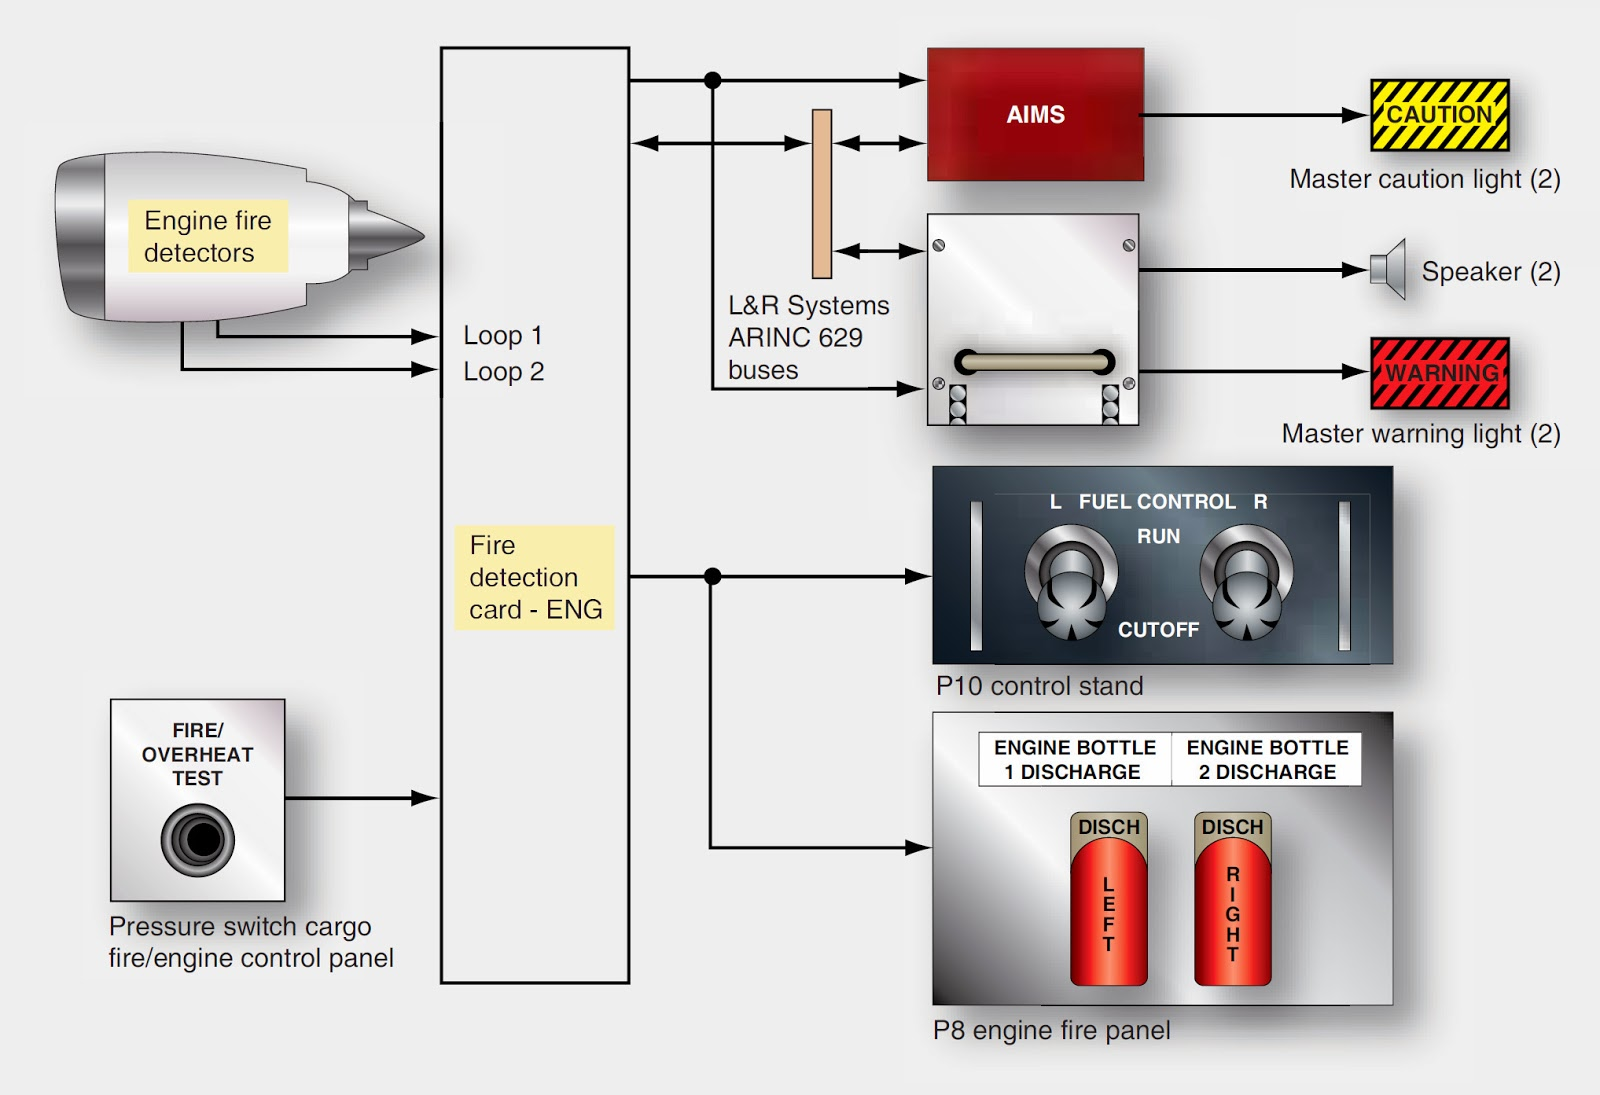 Diesel Generator Control Panel Wiring Diagram likewise Fire Alarm 16 zones conventional fire detection and fire  munication alarm furthermore Poles additionally ProFyre 2 Wire Addressable Fire Detection And Alarm Systems also Intrinsic. on 4 wire fire alarm wiring diagram